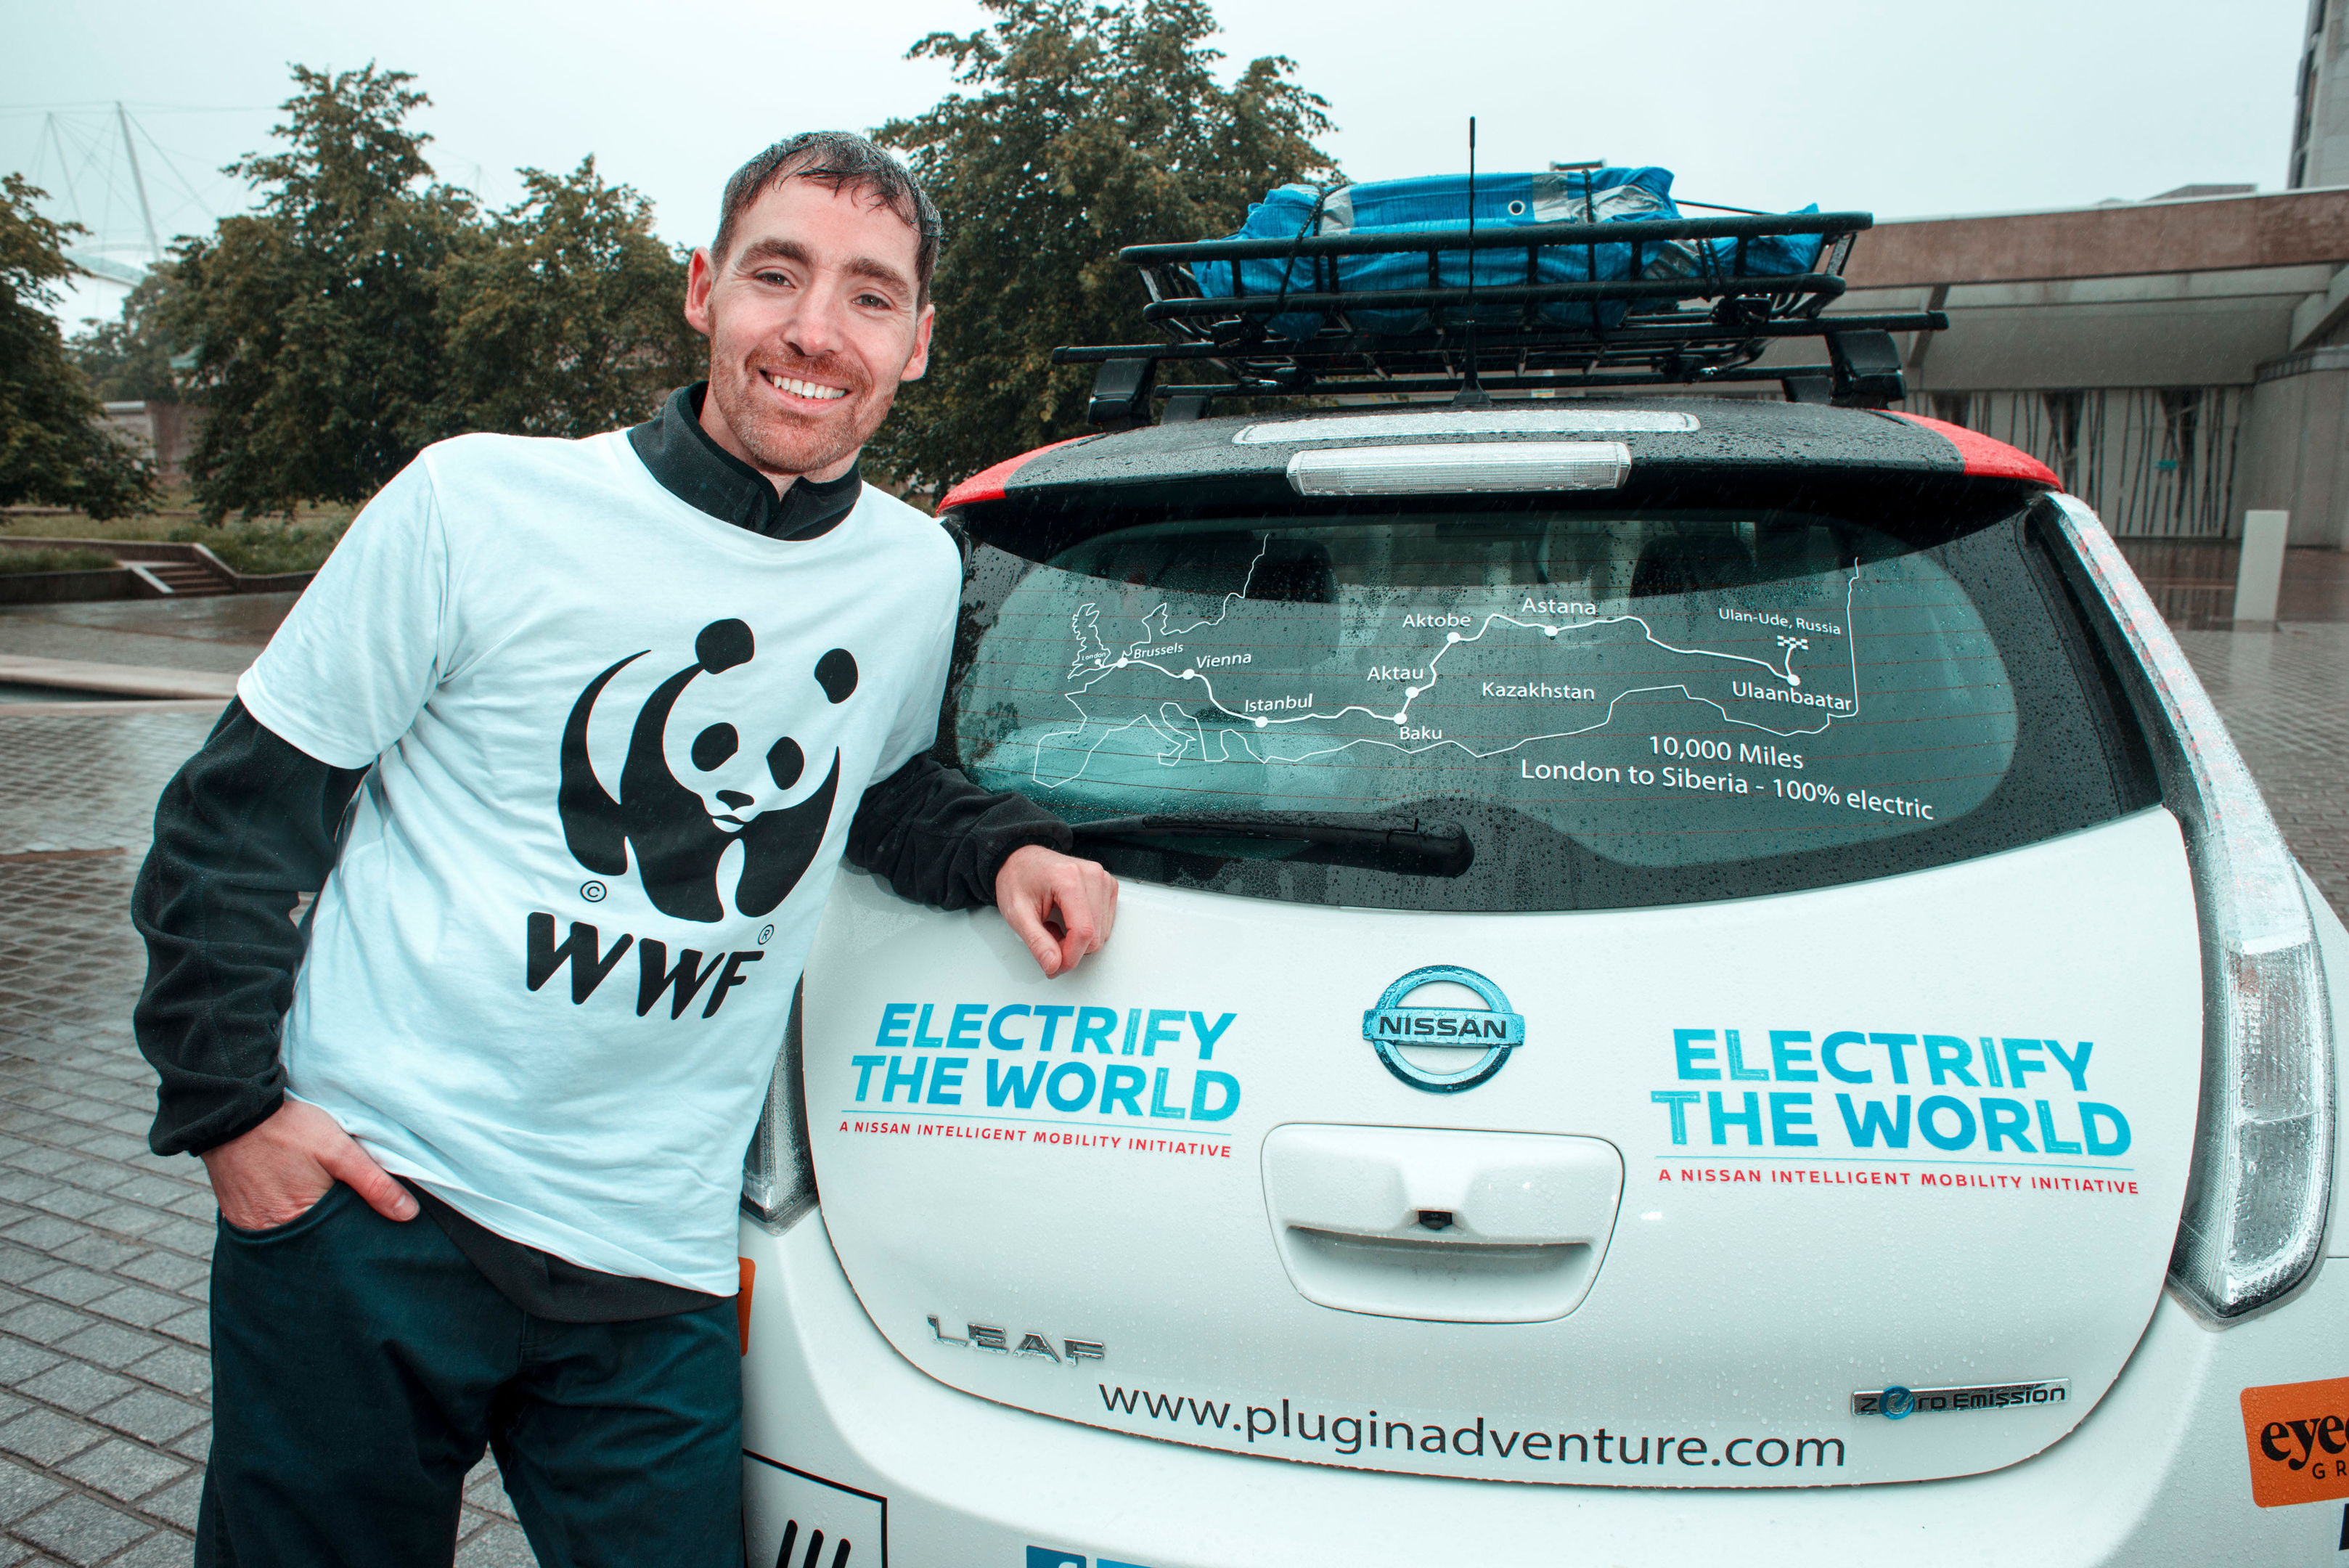 Chris Ramsey, from Aberdeenshire, next to his Nissan Leaf (MAVERICK PHOTO AGENCY/PA Wire)